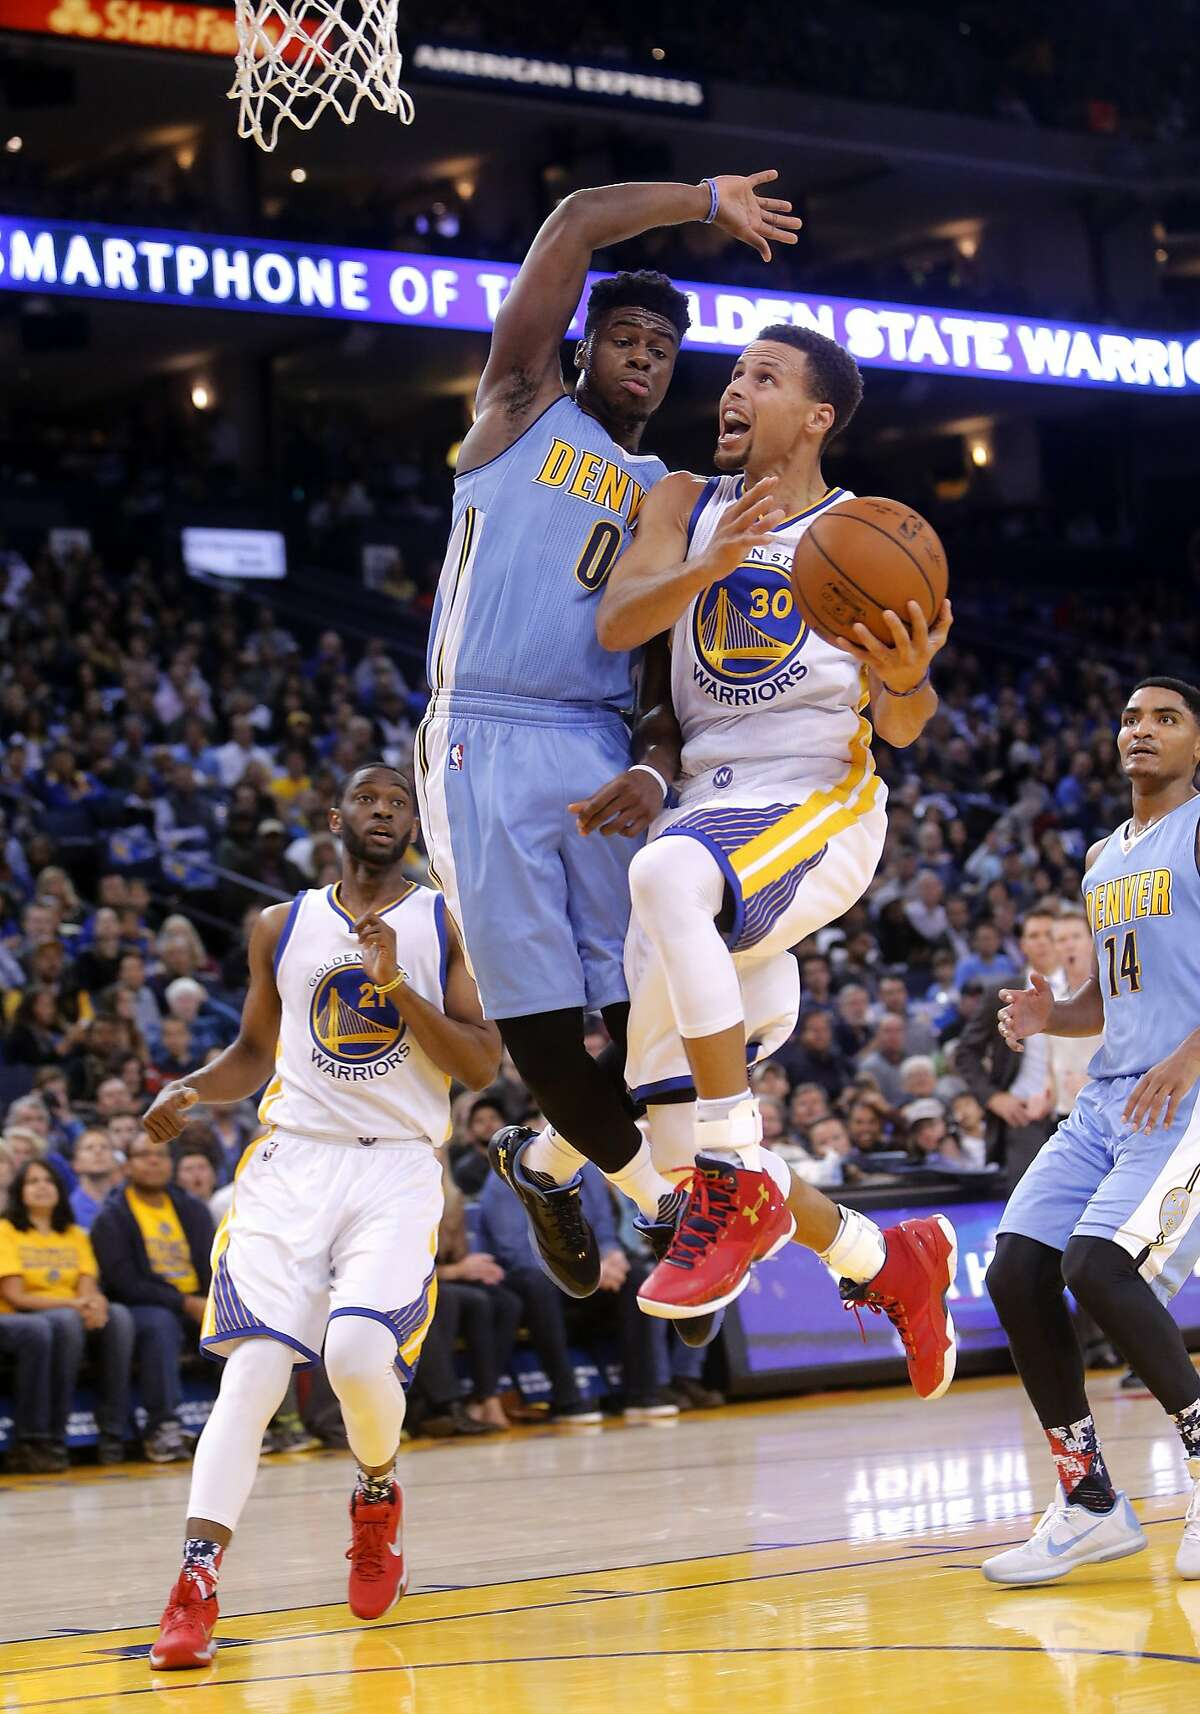 Warriors' Stephen Curry, 30 goes up for a basket in the second quarter as he is guarded by the Nuggets' Emmanual Mudiay, 0 as the Golden Sate Warriors take on the Denver Nuggets at the Oracle Arena in Oakland, Calif. on Fri. November 6, 2015.